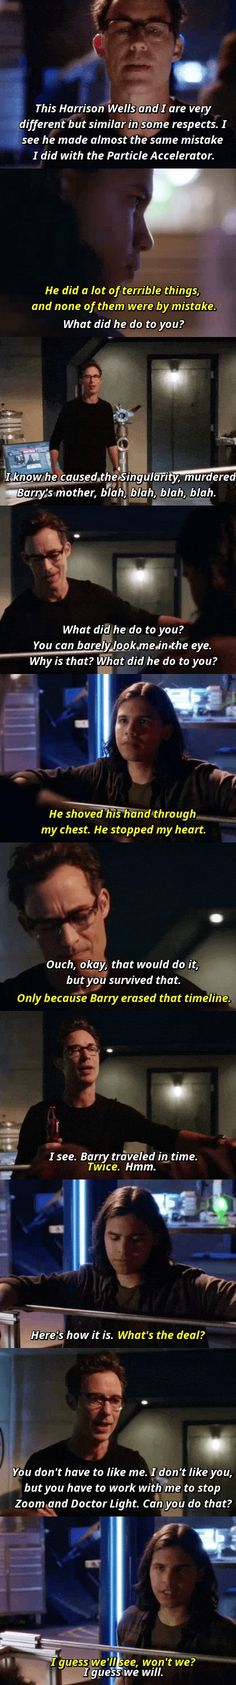 THE FLASH. CISCO RAMON. HARRISON WELLS. THE DARKNESS AND THE LIGHT. 2X05. SEASON 2. HARRY AND CISCO ARE THE BEST.